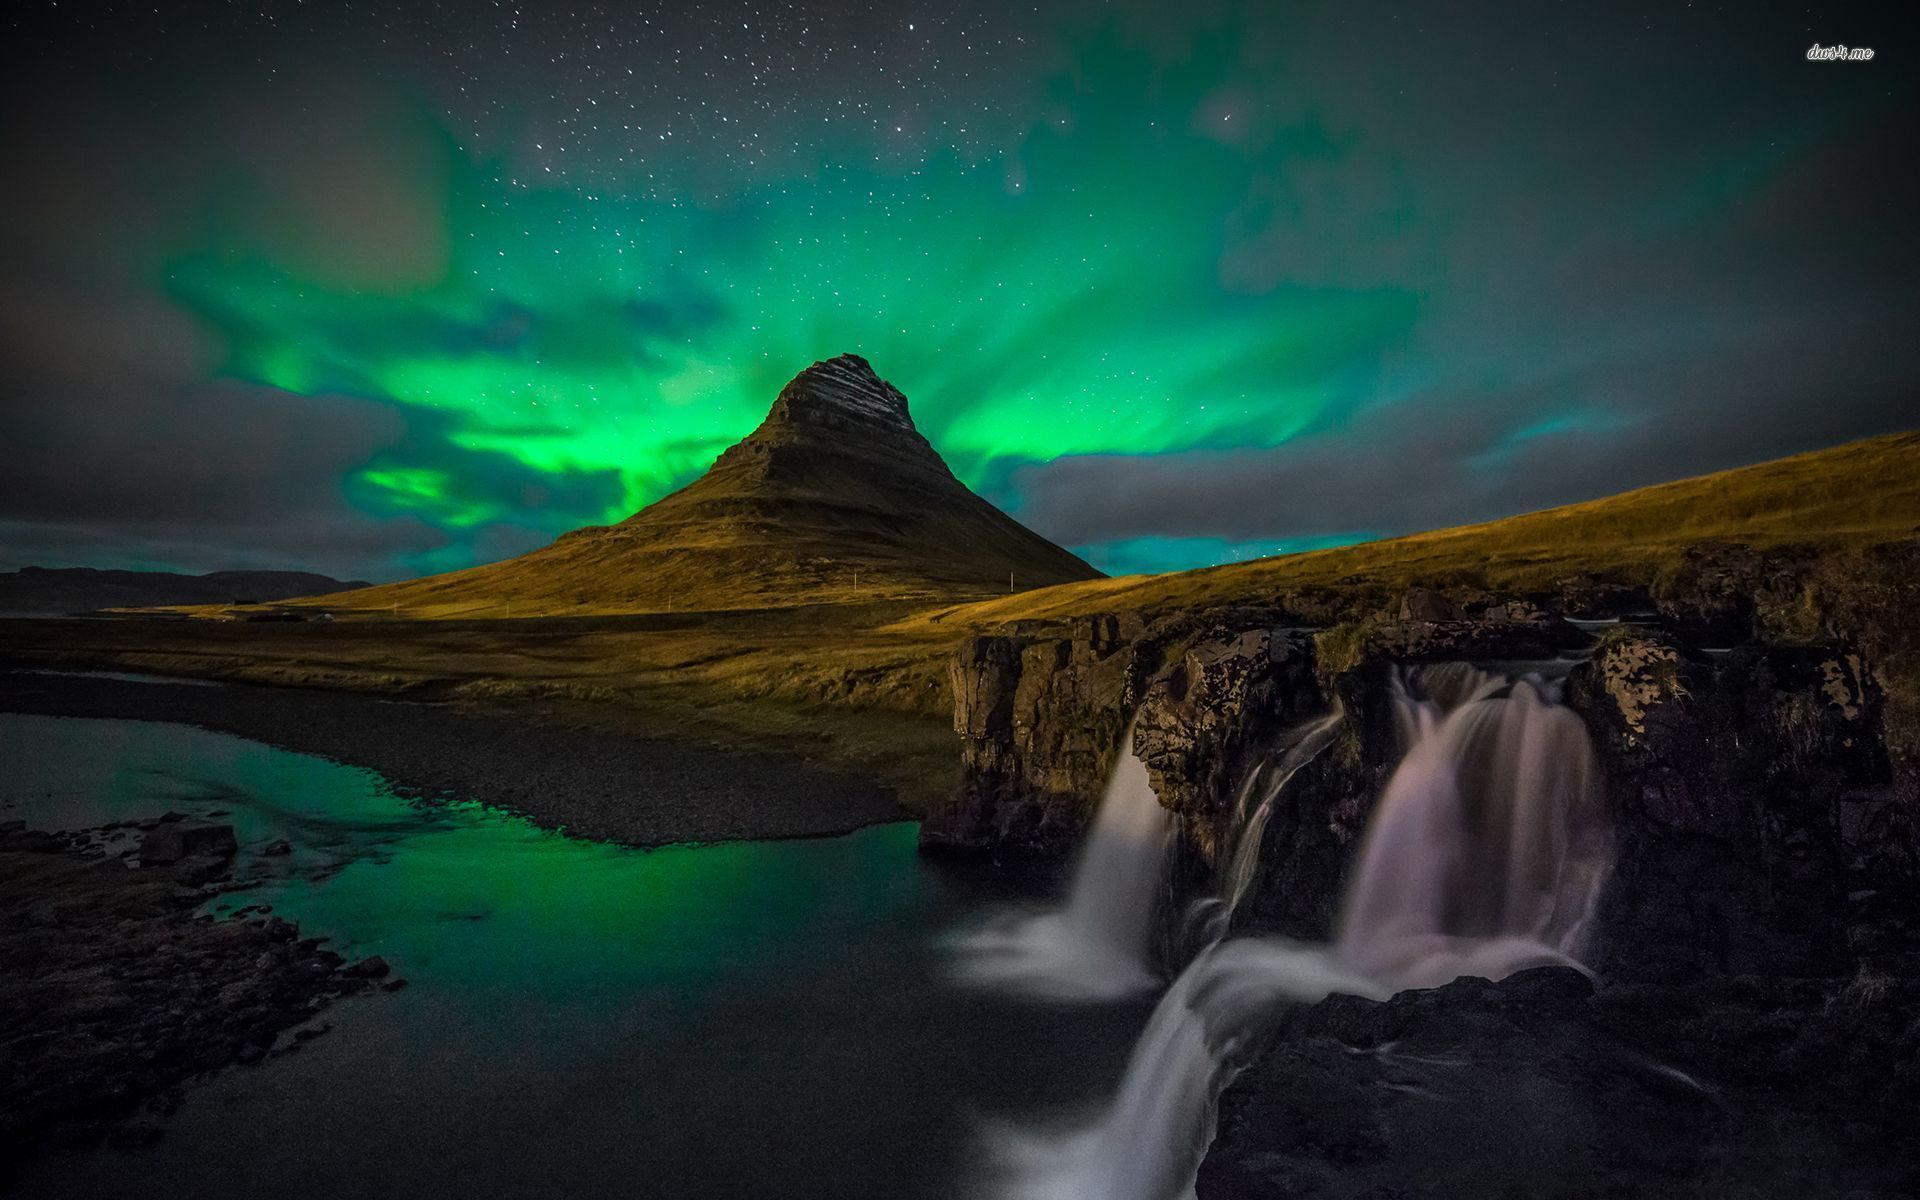 Download Iceland Northern Lights Wallpaper tfw 1920x1200 px 274 1920x1200